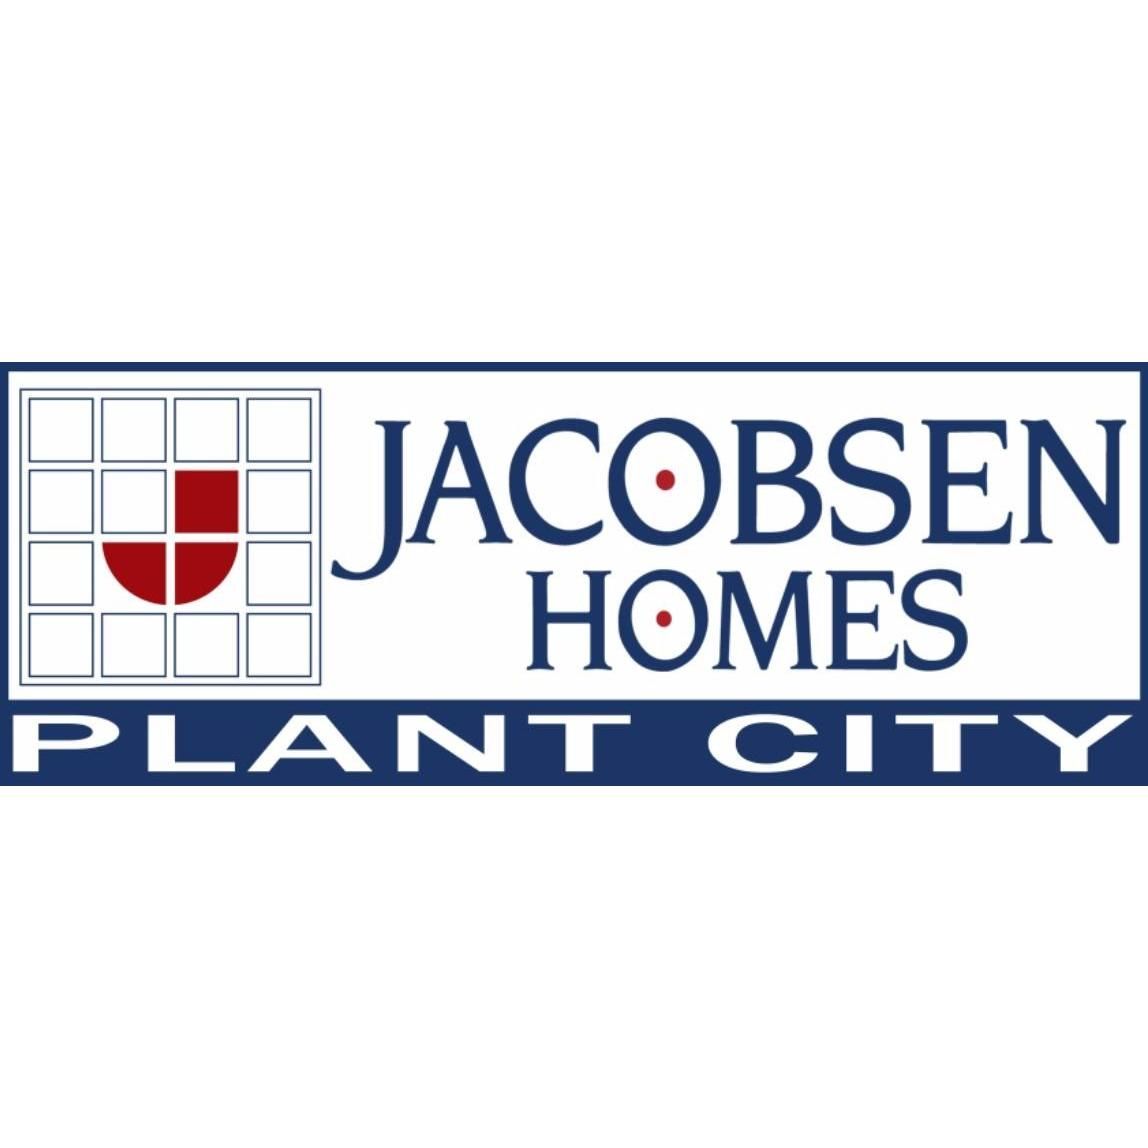 Jacobsen homes plant city the factory home store coupons for Local builders near me